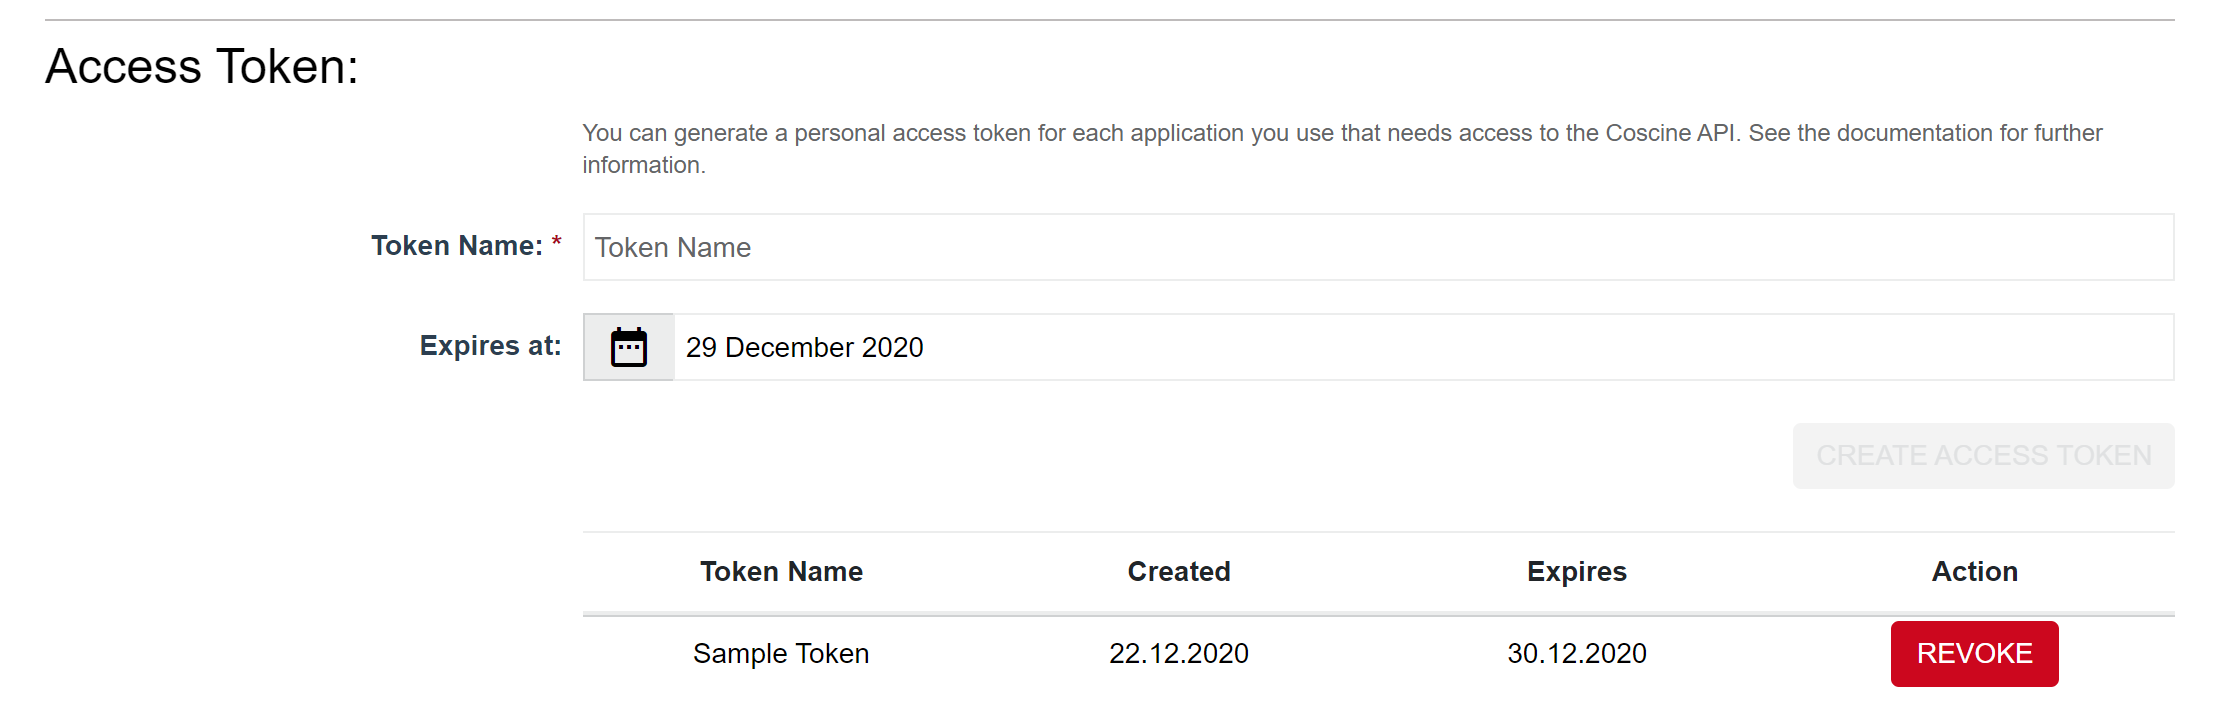 Sample Access Token